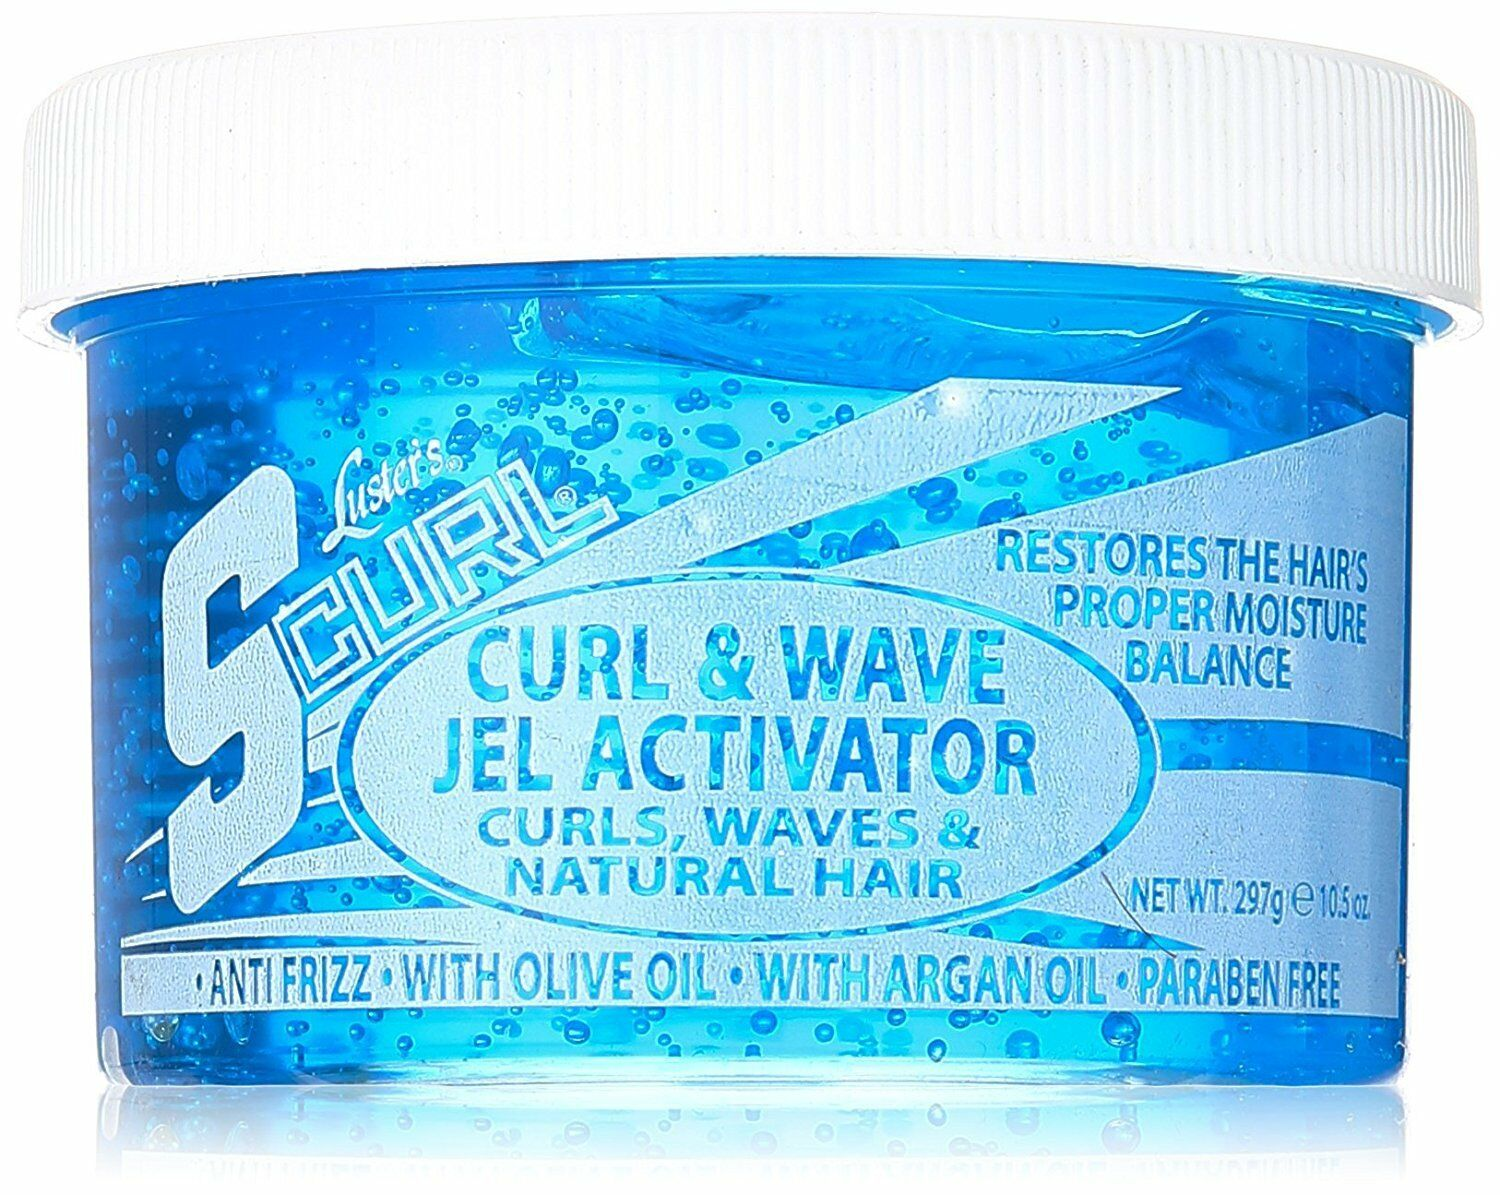 Luster's Scurl Curl & Wave Gel Activator for Curls Waves and